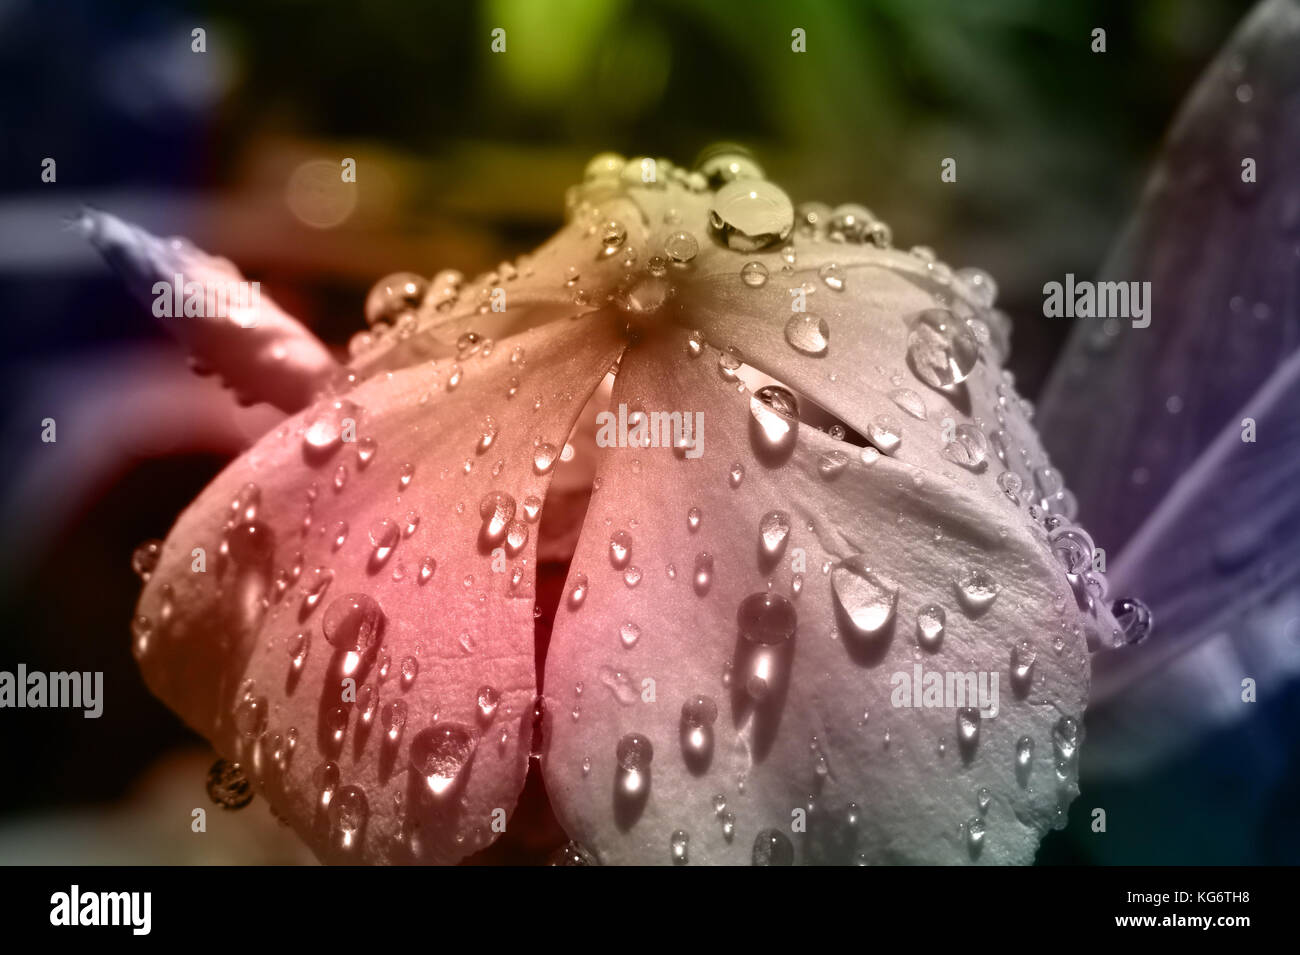 A beautiful tropical flower with fresh raindrops on its delicate petals - Stock Image